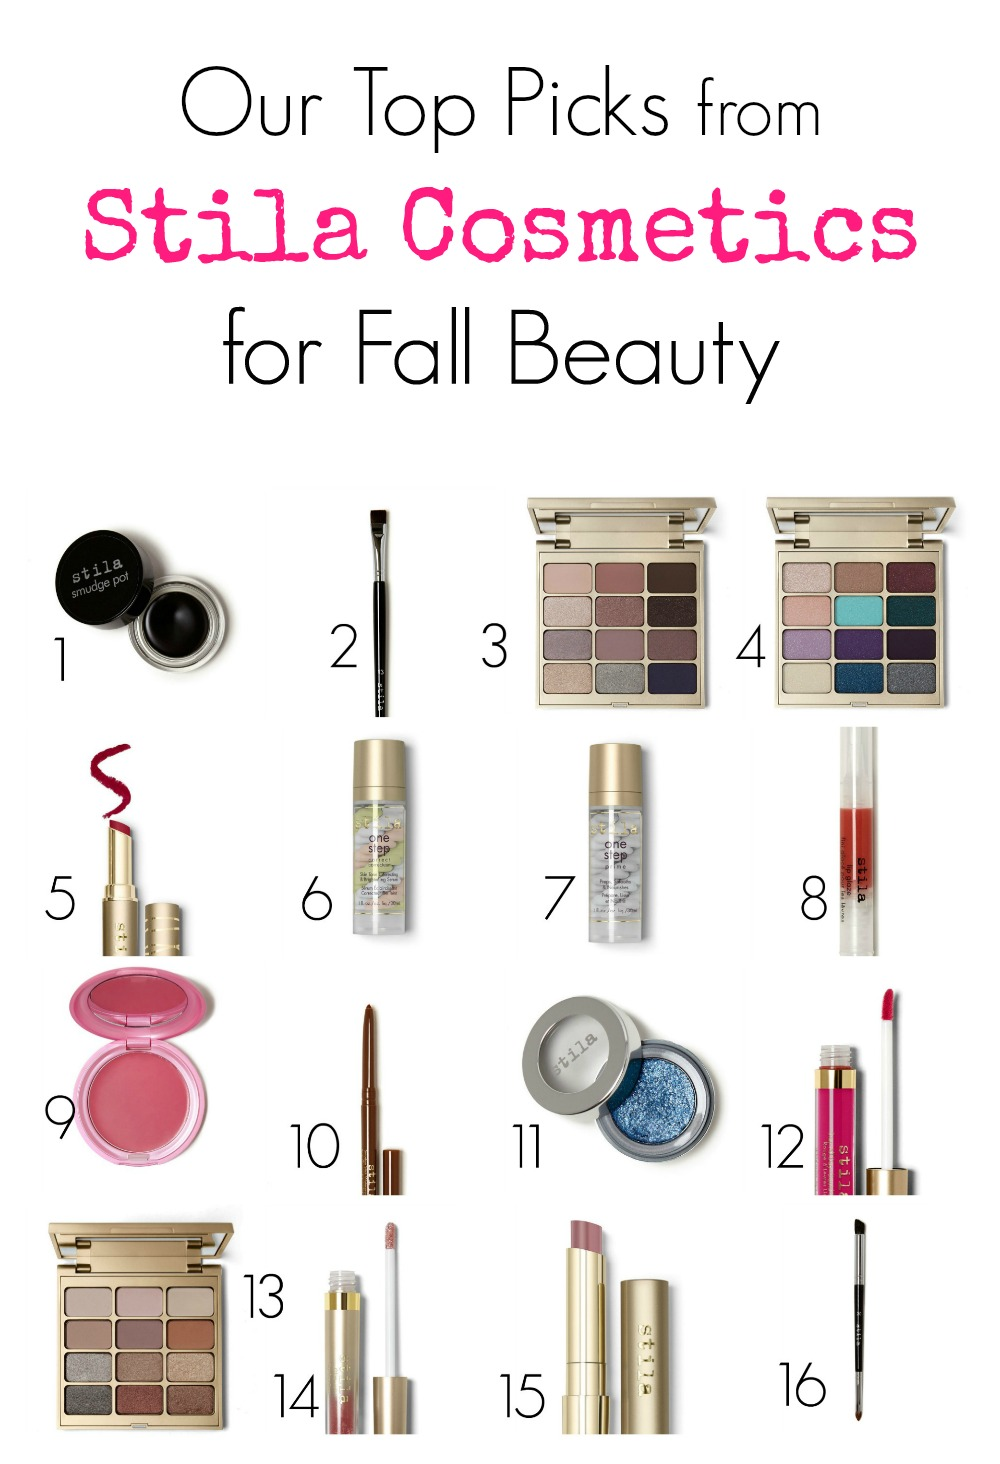 Check out our favorite Stila Cosmetics beauty picks for fall.